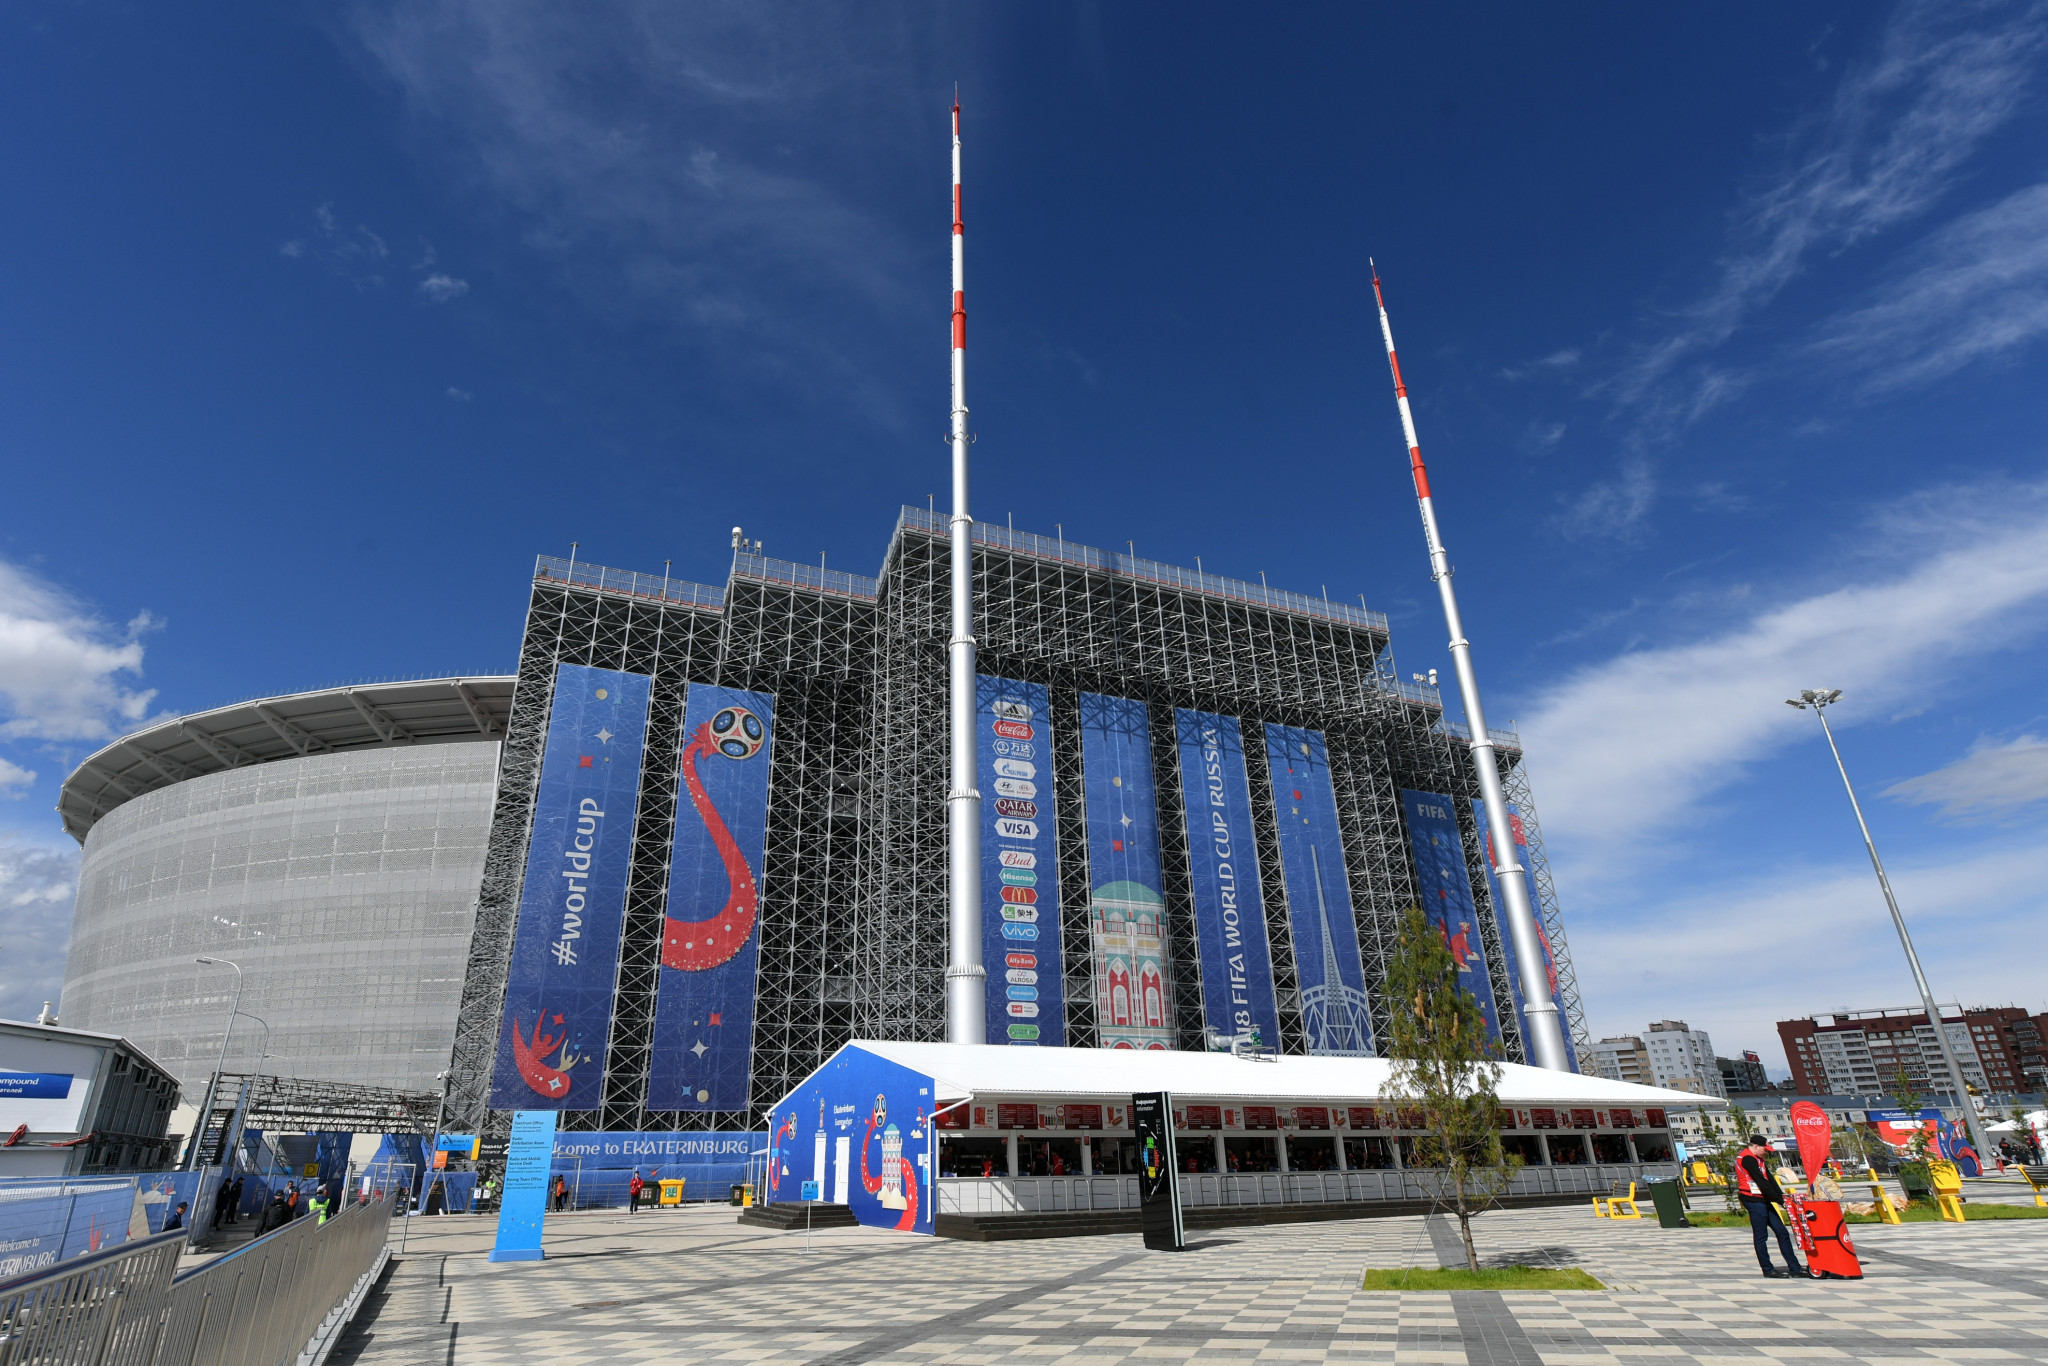 Yekaterinburg hosted FIFA World Cup matches in 2018 and is due to stage the 2023 Summer World University Games ©Getty Images